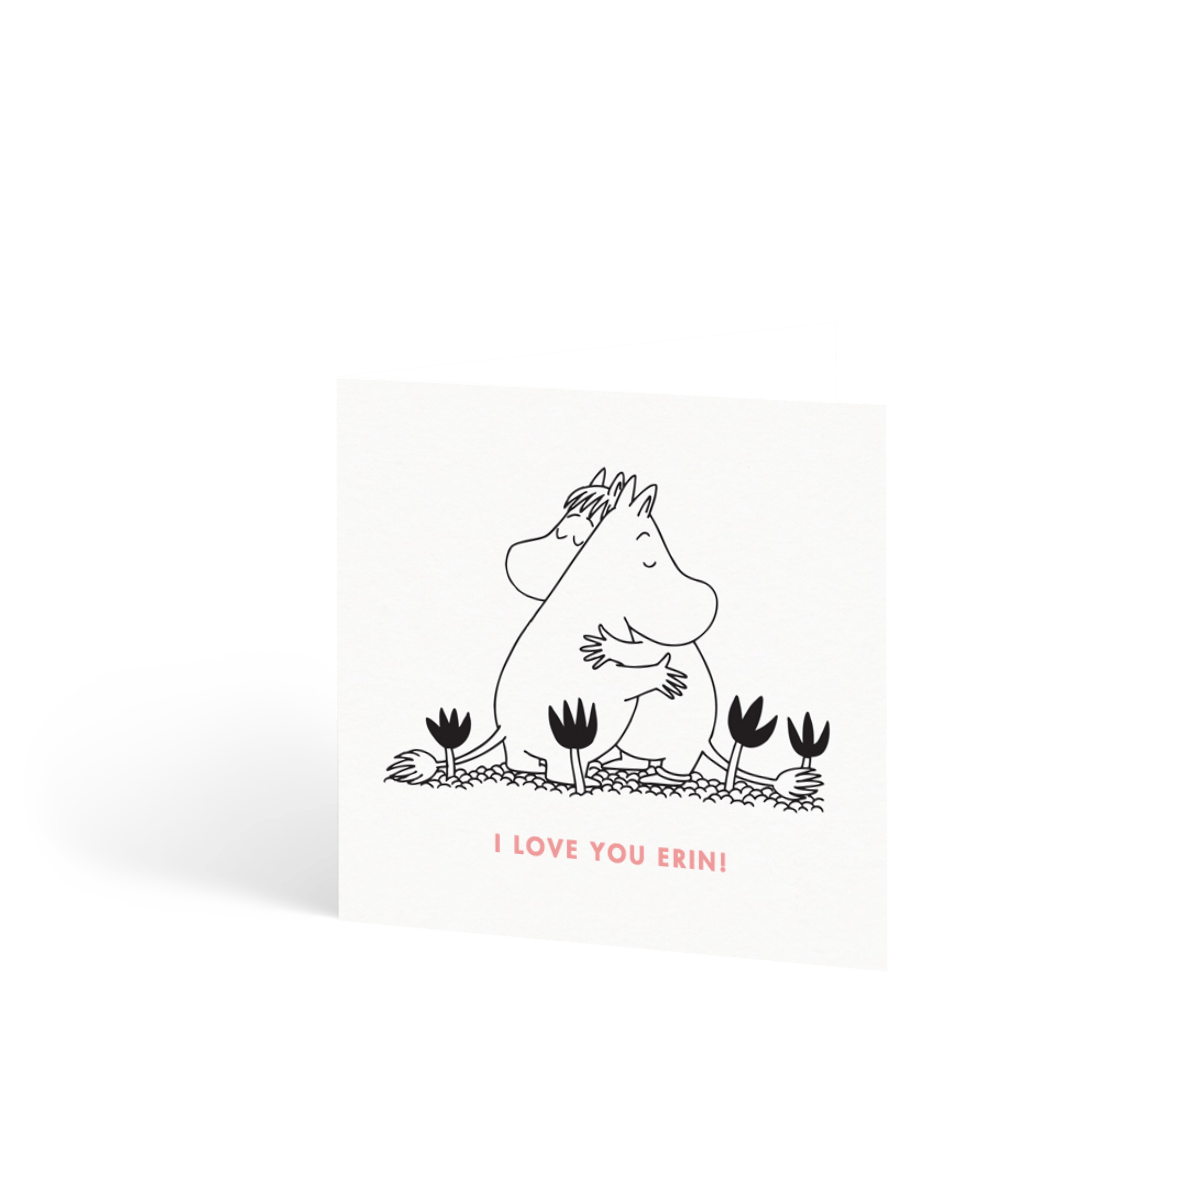 Https%3a%2f%2fwww.papier.com%2fproduct image%2f32871%2f16%2fmoomin love 8238 front 1515762656.png?ixlib=rb 1.1